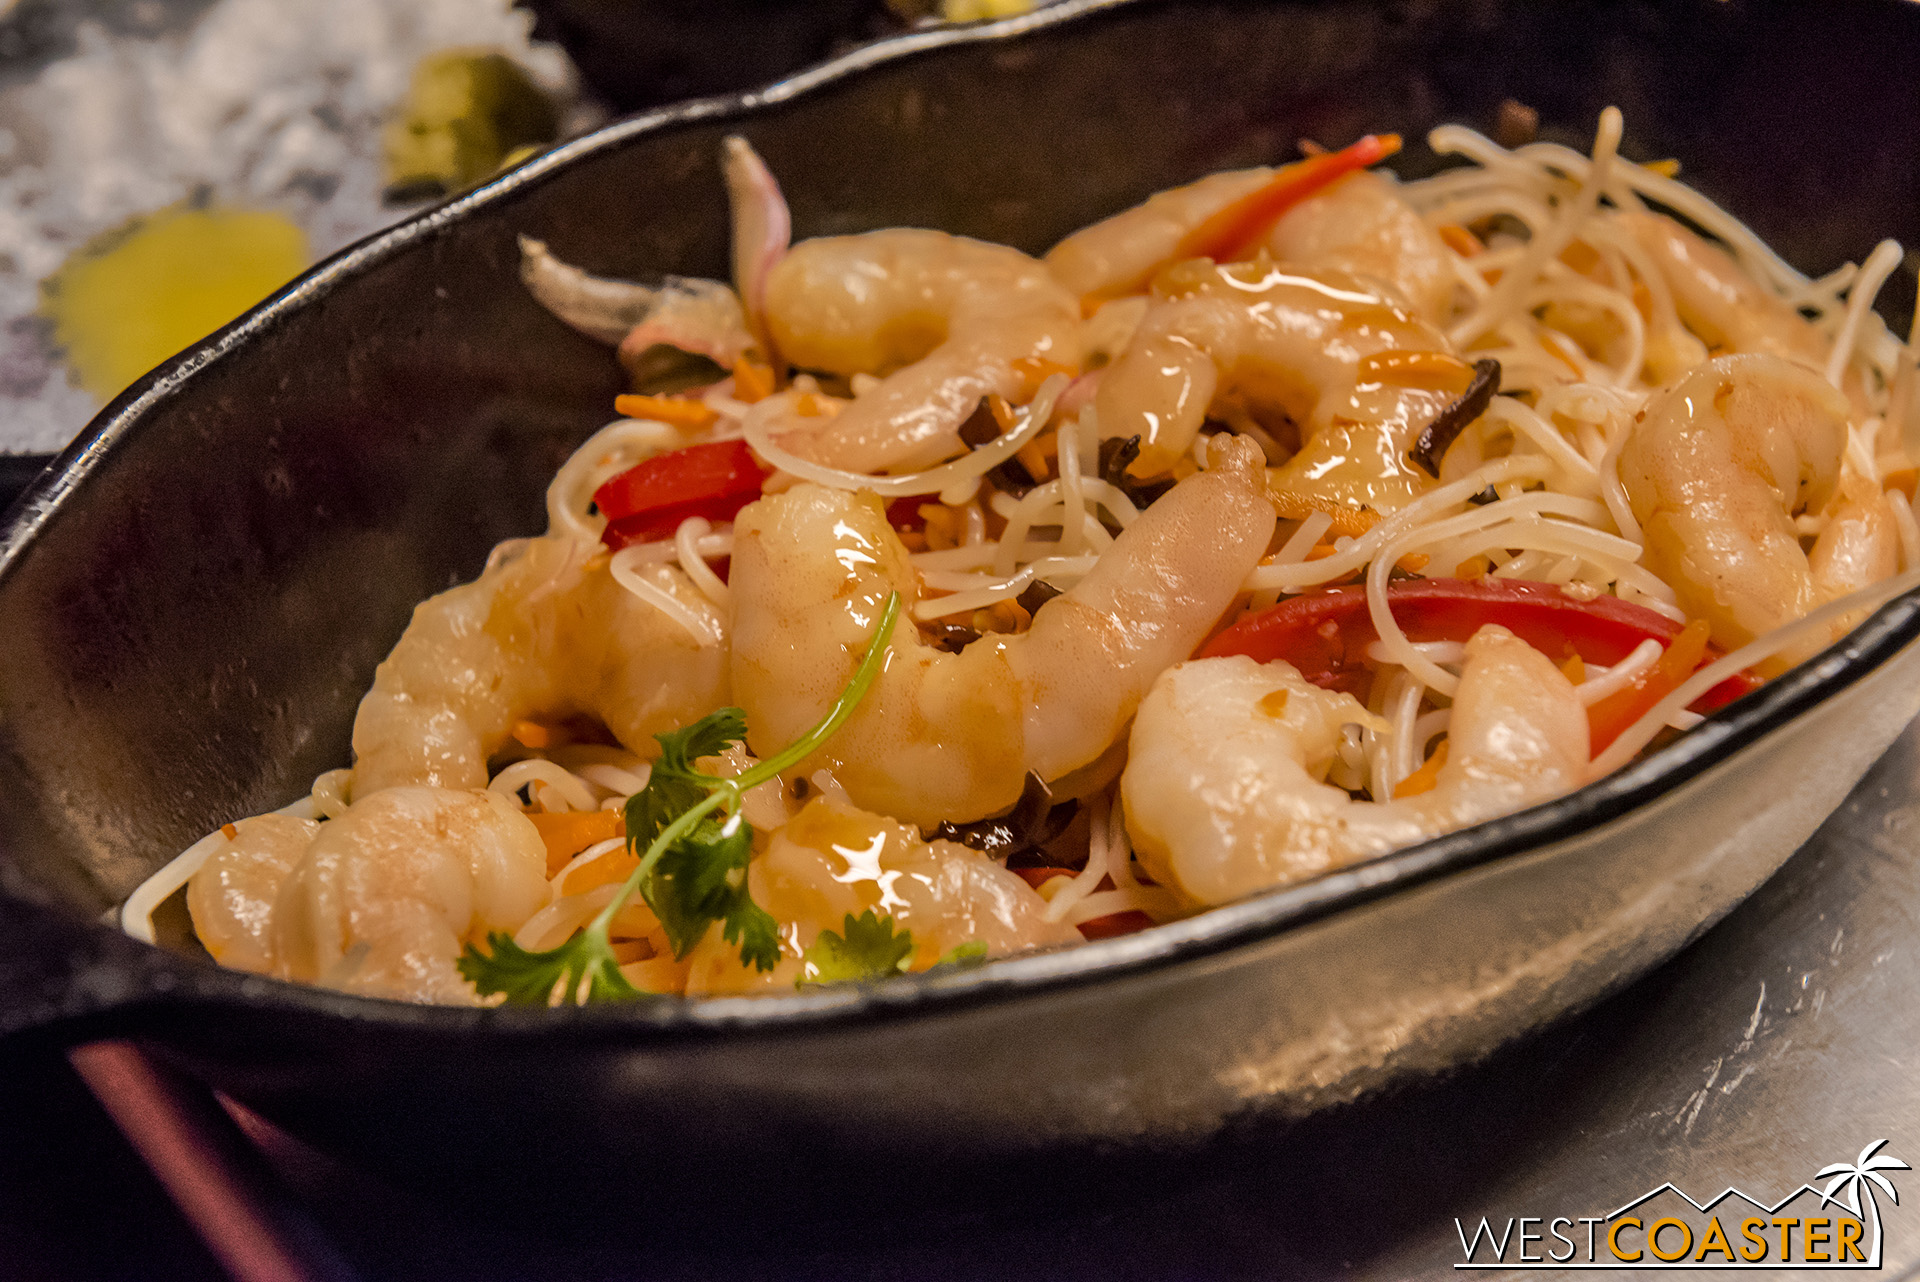 The Yobshrimp Noodle Salad offers a surprising heaping of shrimp and has a great, Vietnamese style tang to it.